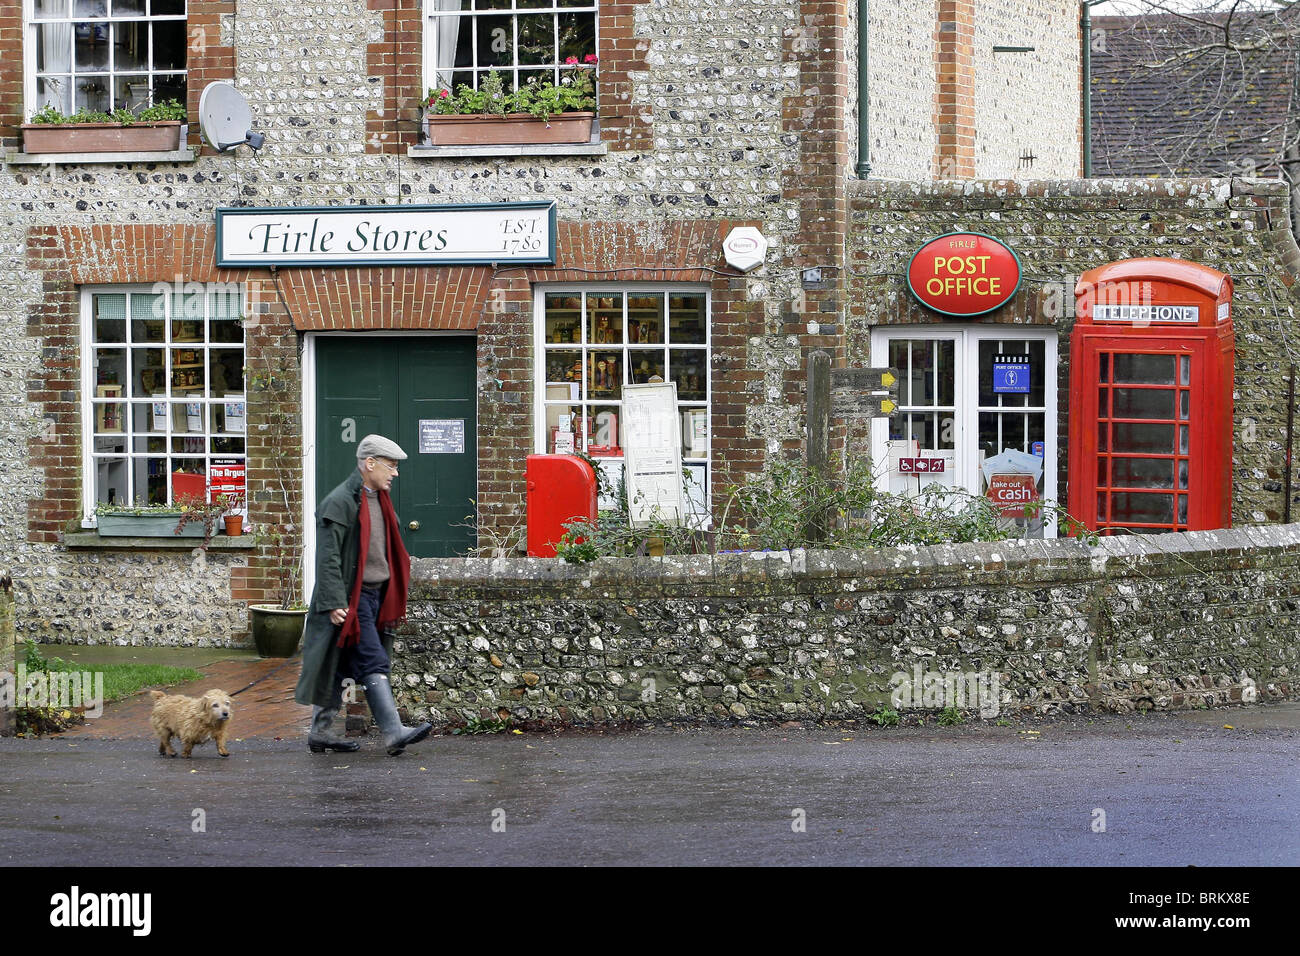 Rural Store and Post Office in Firle, East Sussex. Picture by James Boardman. Stock Photo